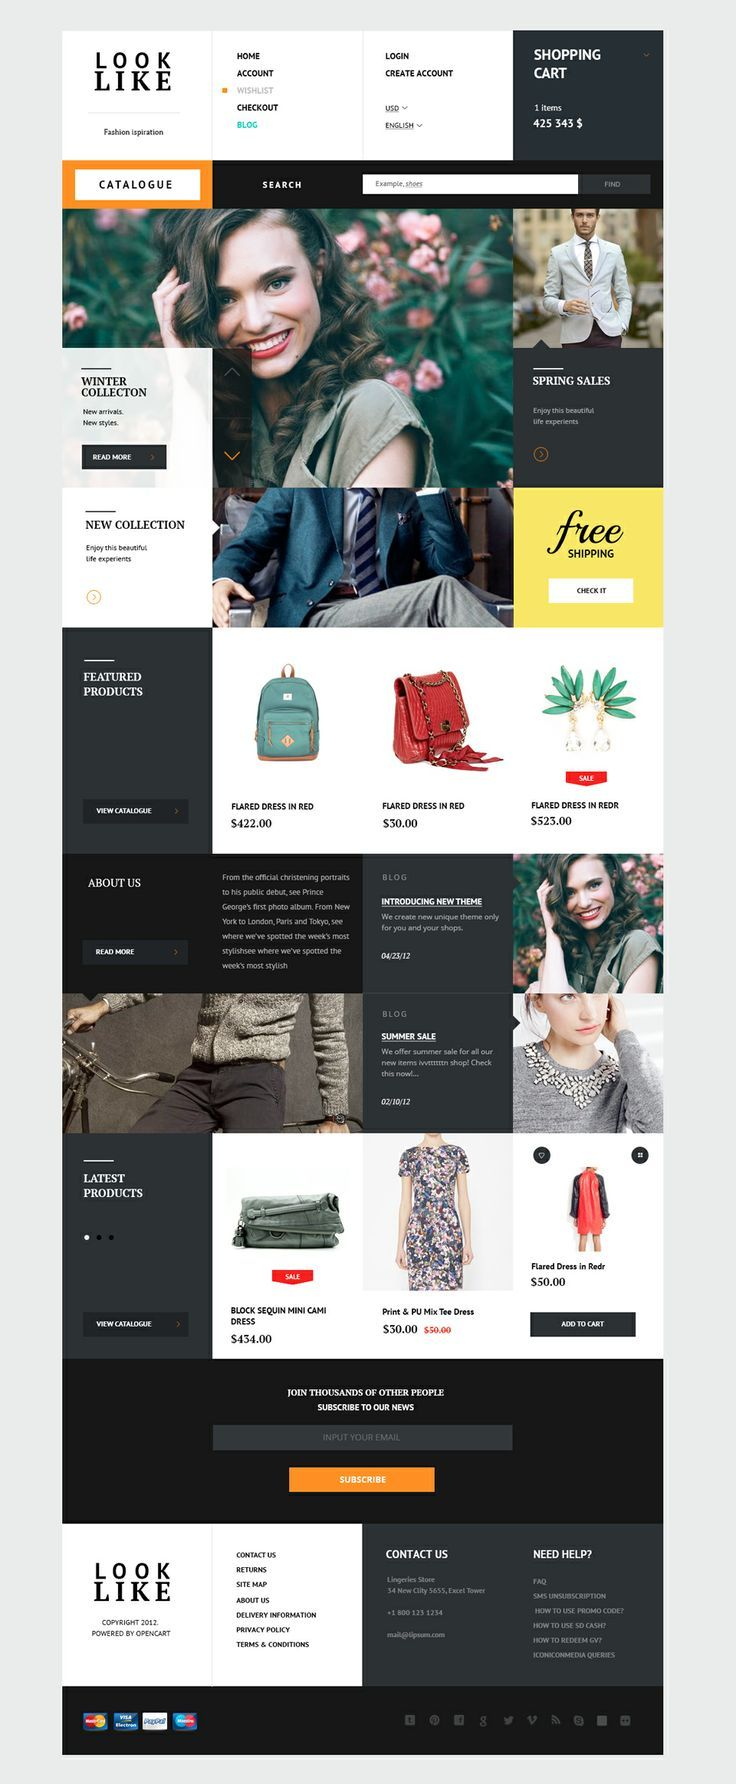 Looklike web design 메트로 ui방식